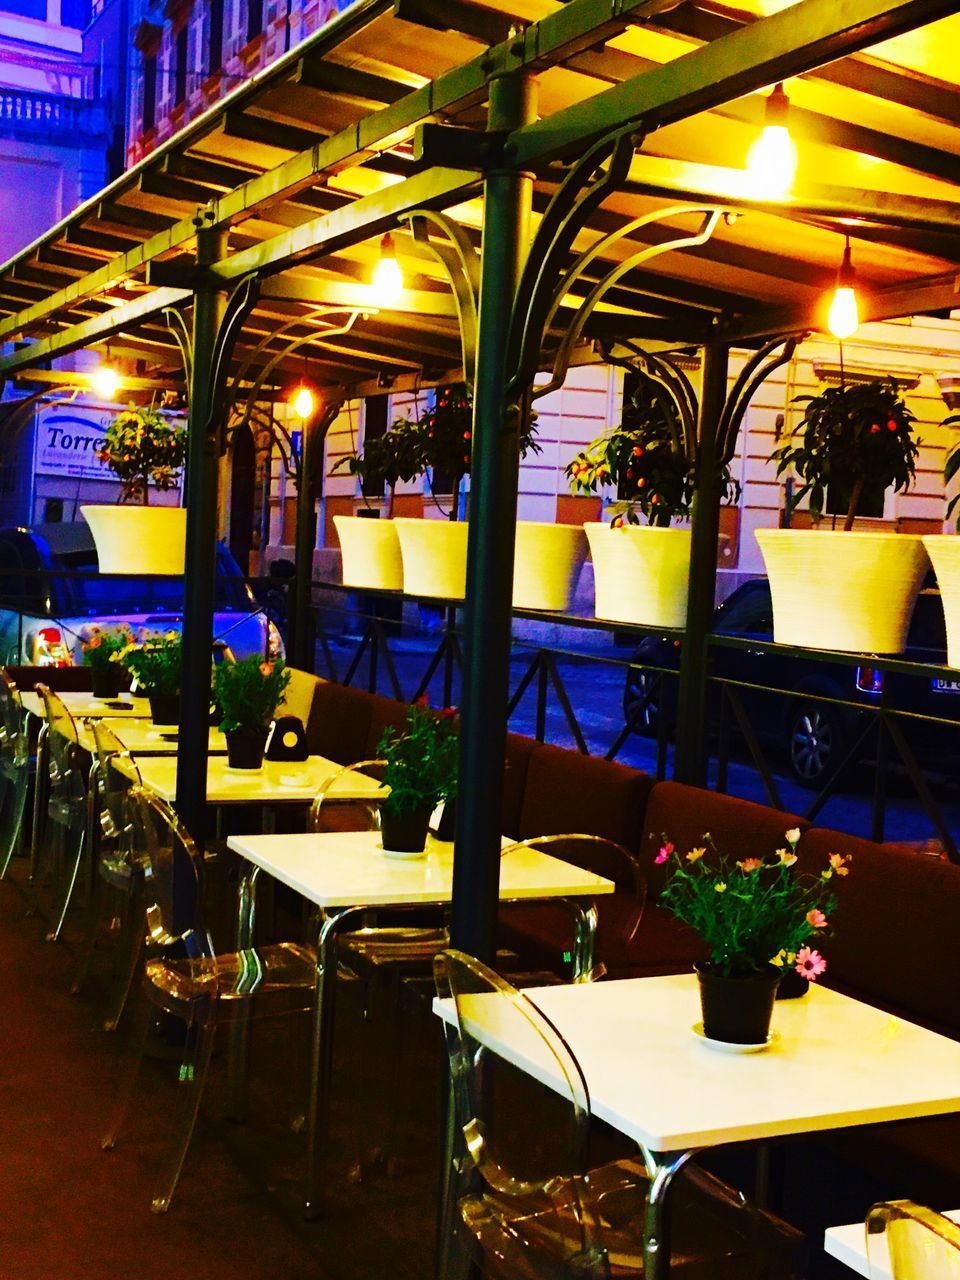 illuminated, indoors, night, in a row, chair, restaurant, table, seat, no people